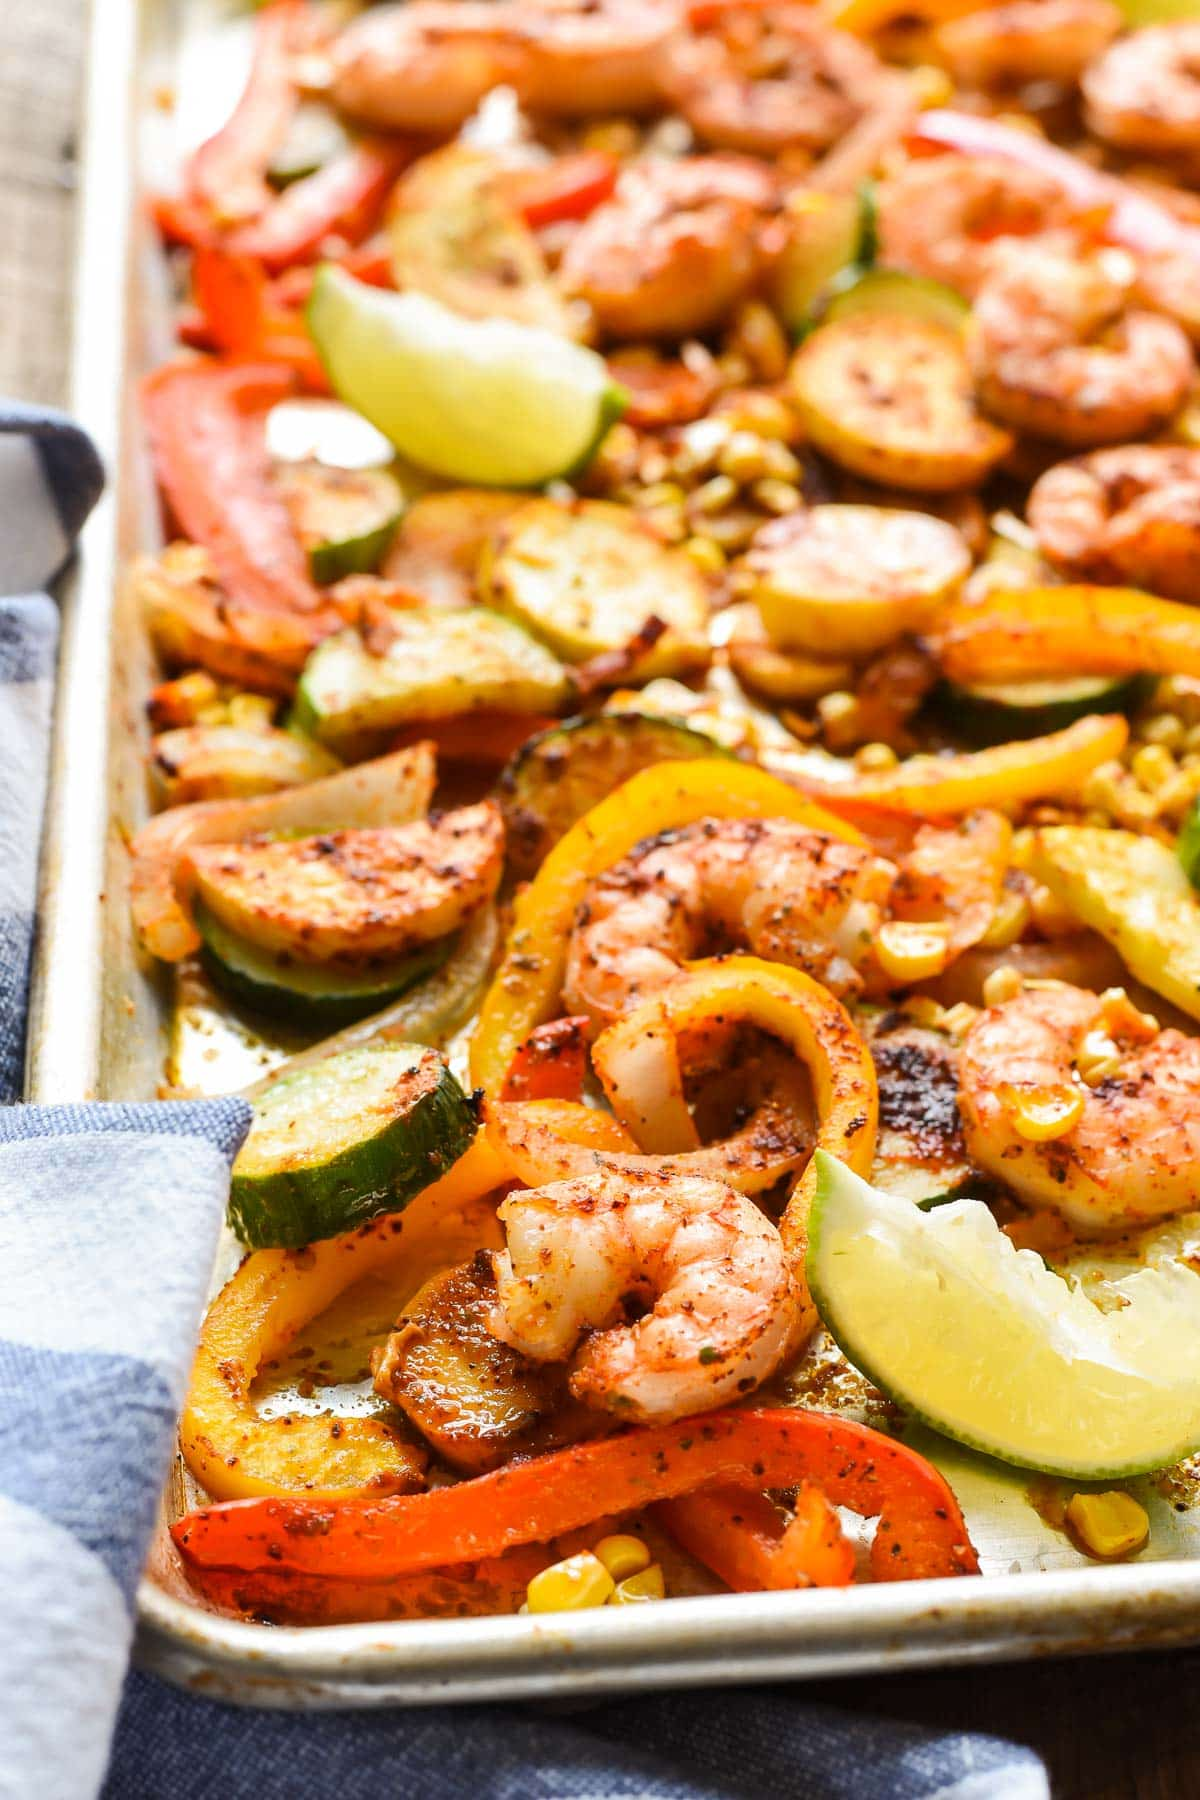 Summery Sheet Pan Shrimp Tacos is an easy 30 minute meal the whole family will love.